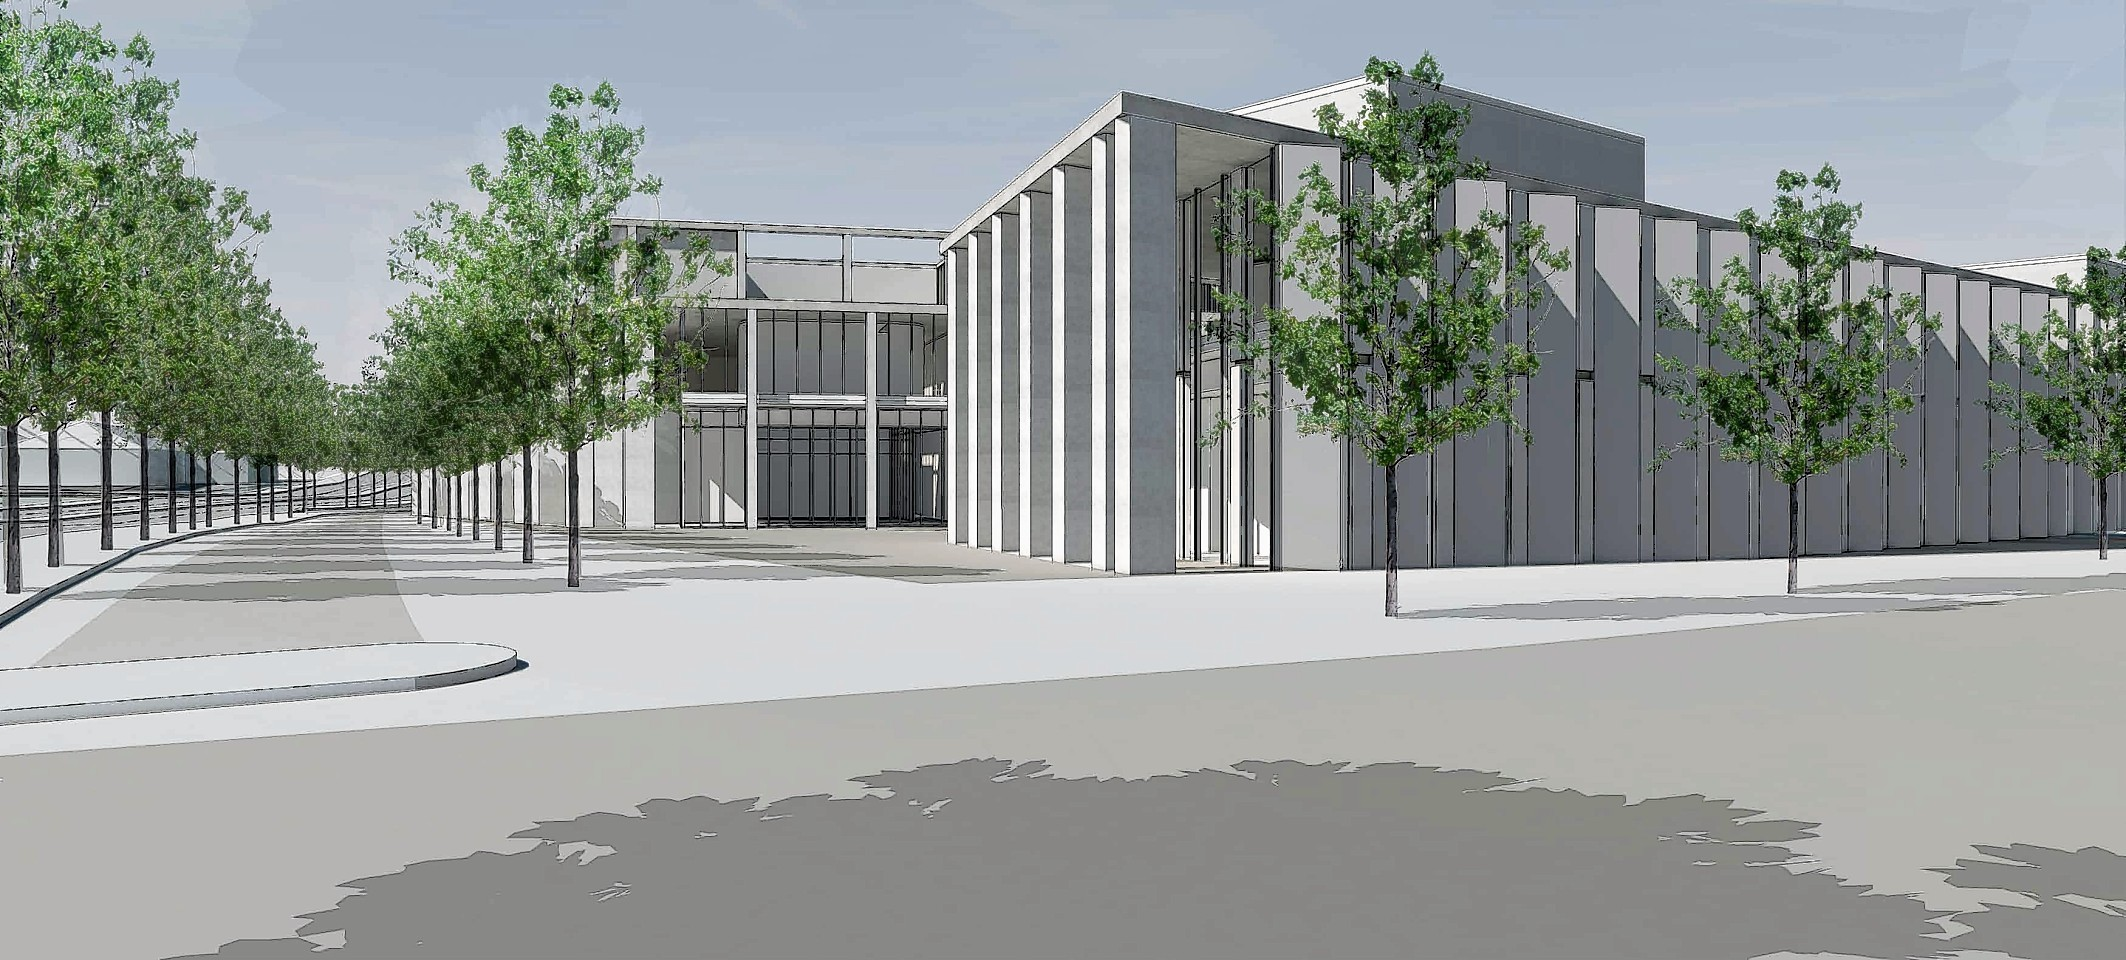 Artist's impression of the new justice centre.